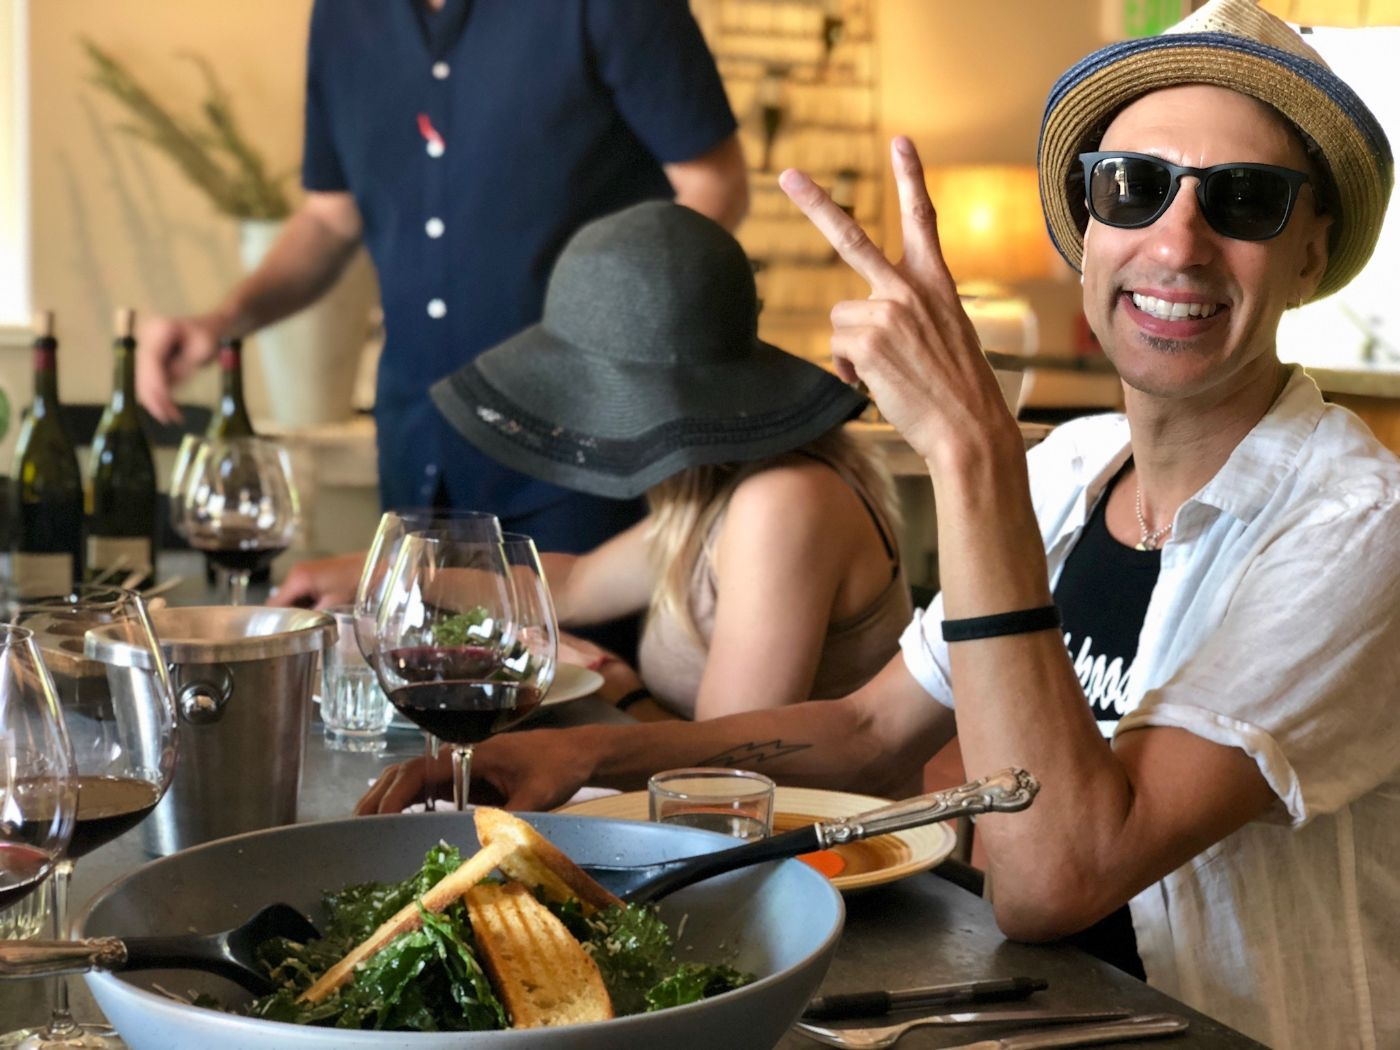 Guests enjoying lunch and wine on tasting trip